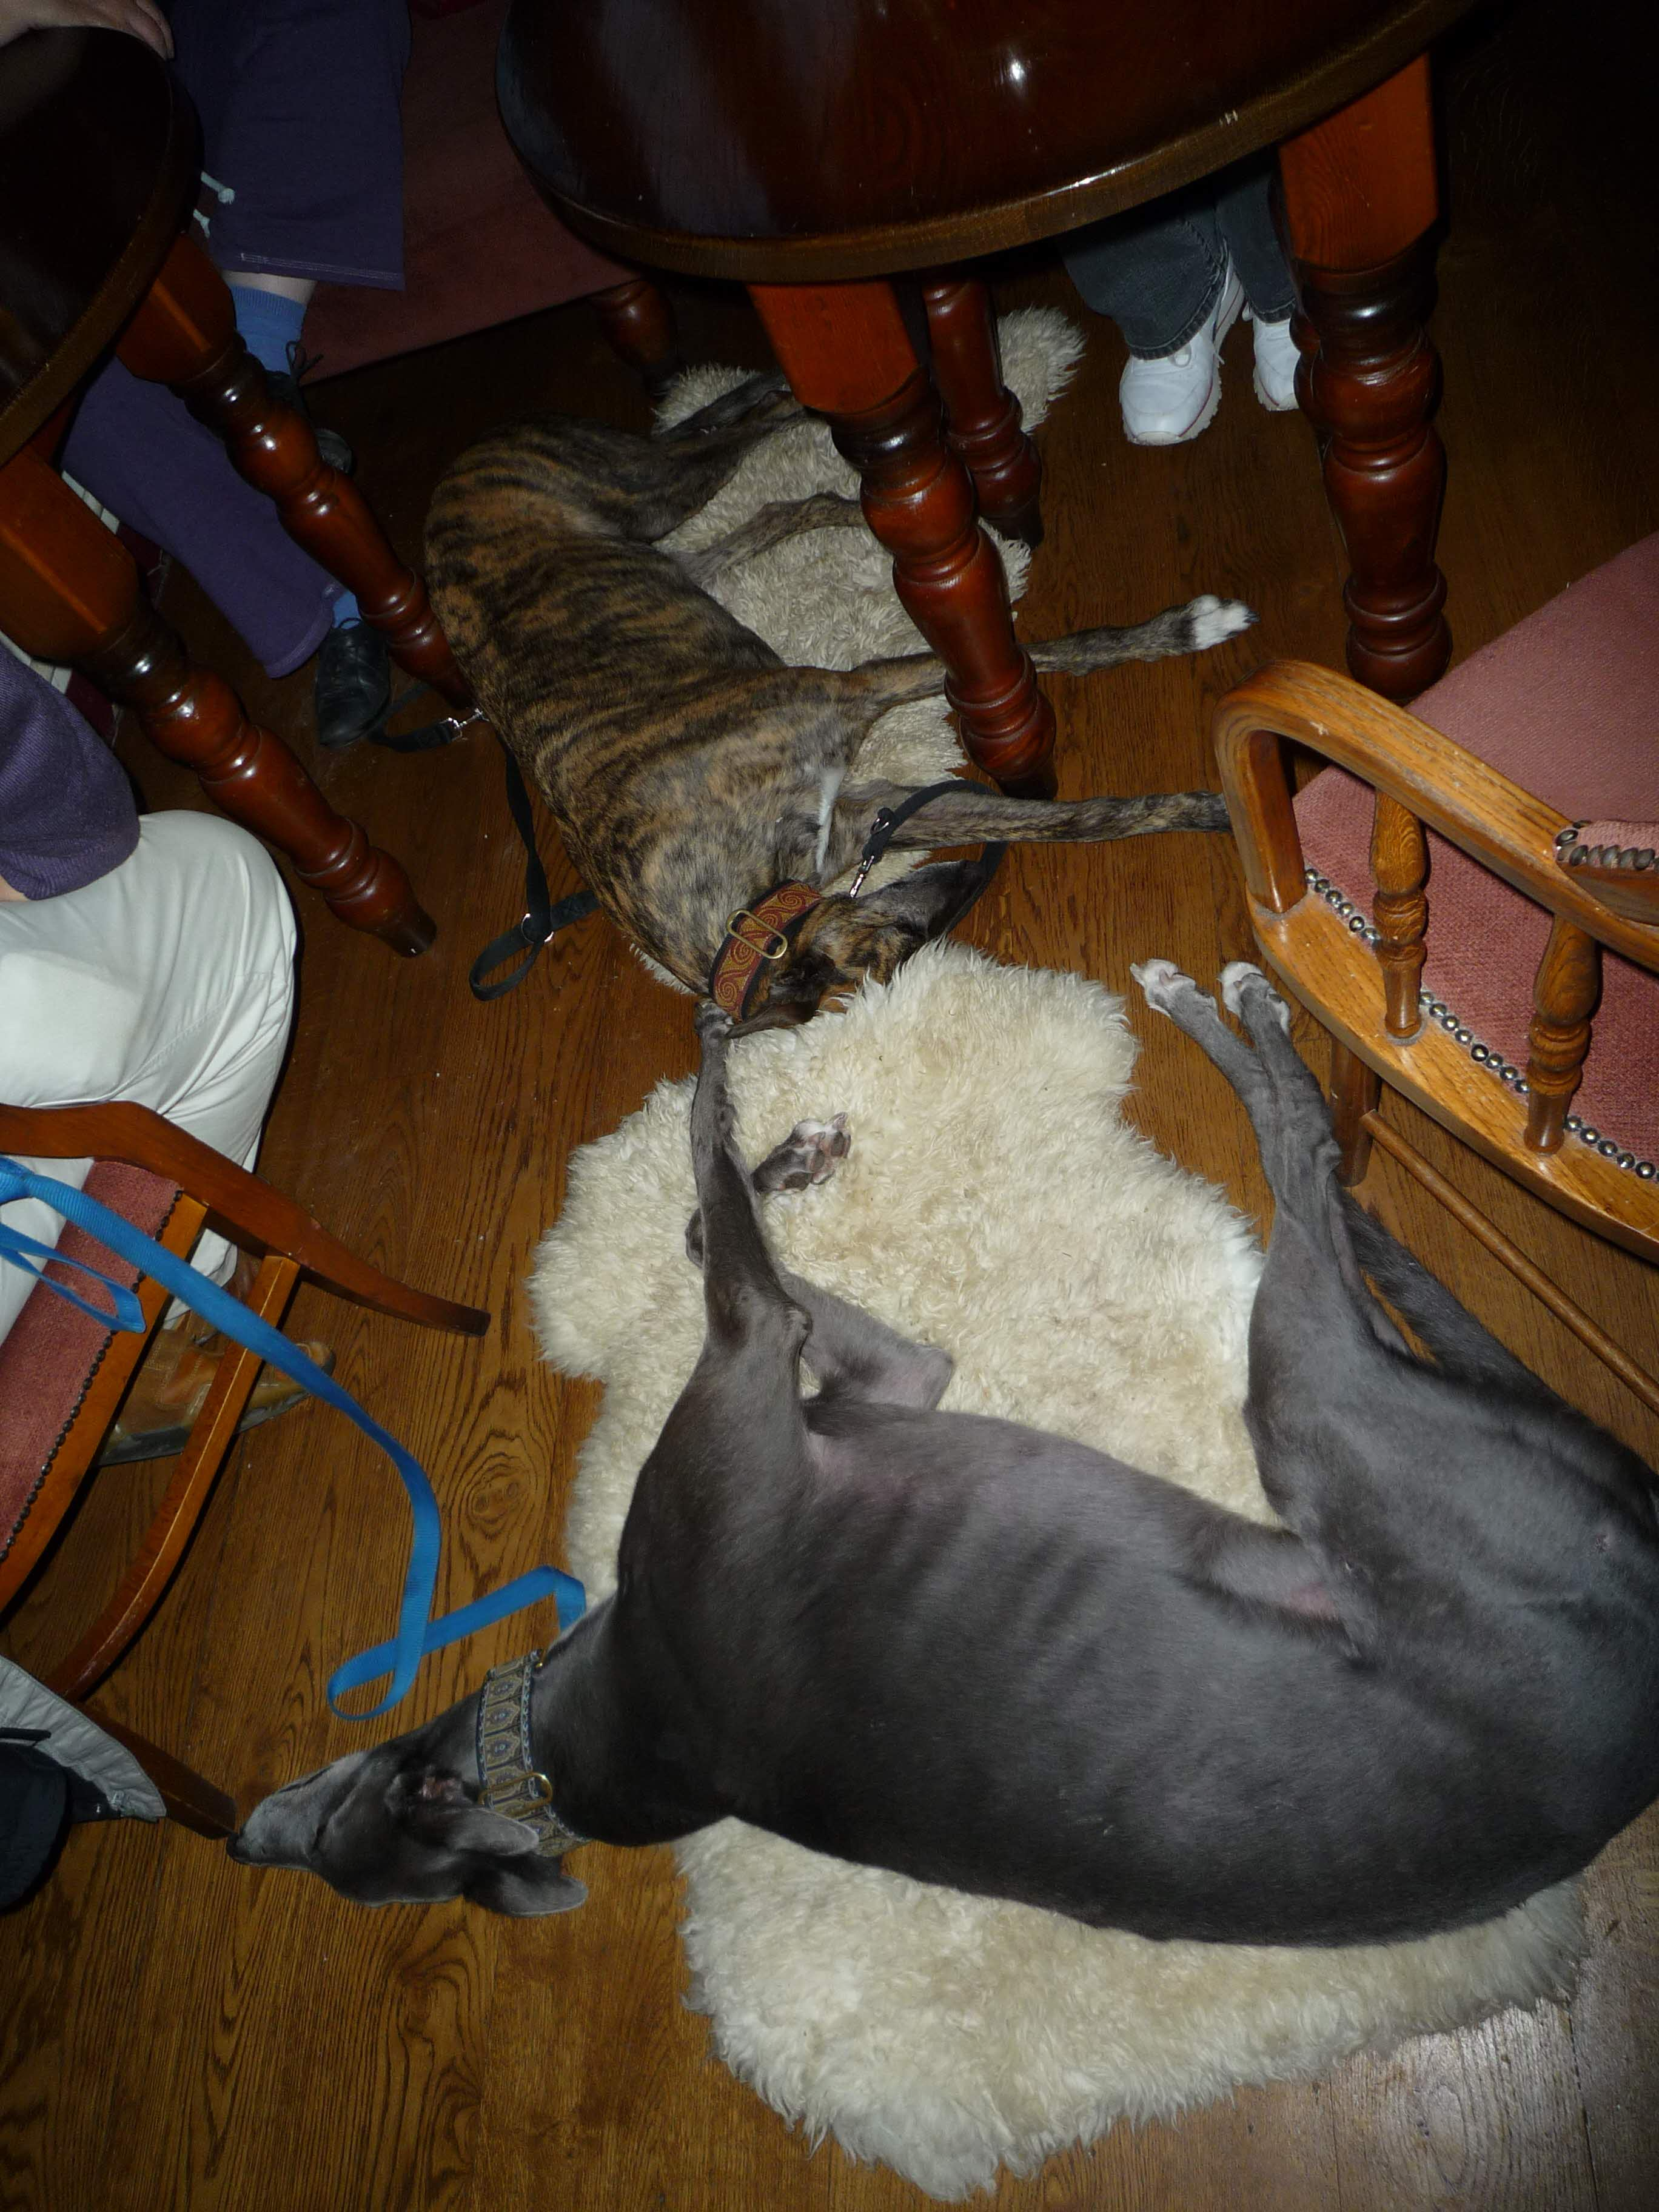 Blue and Lou at the Leigh Inn - it's been a busy day...